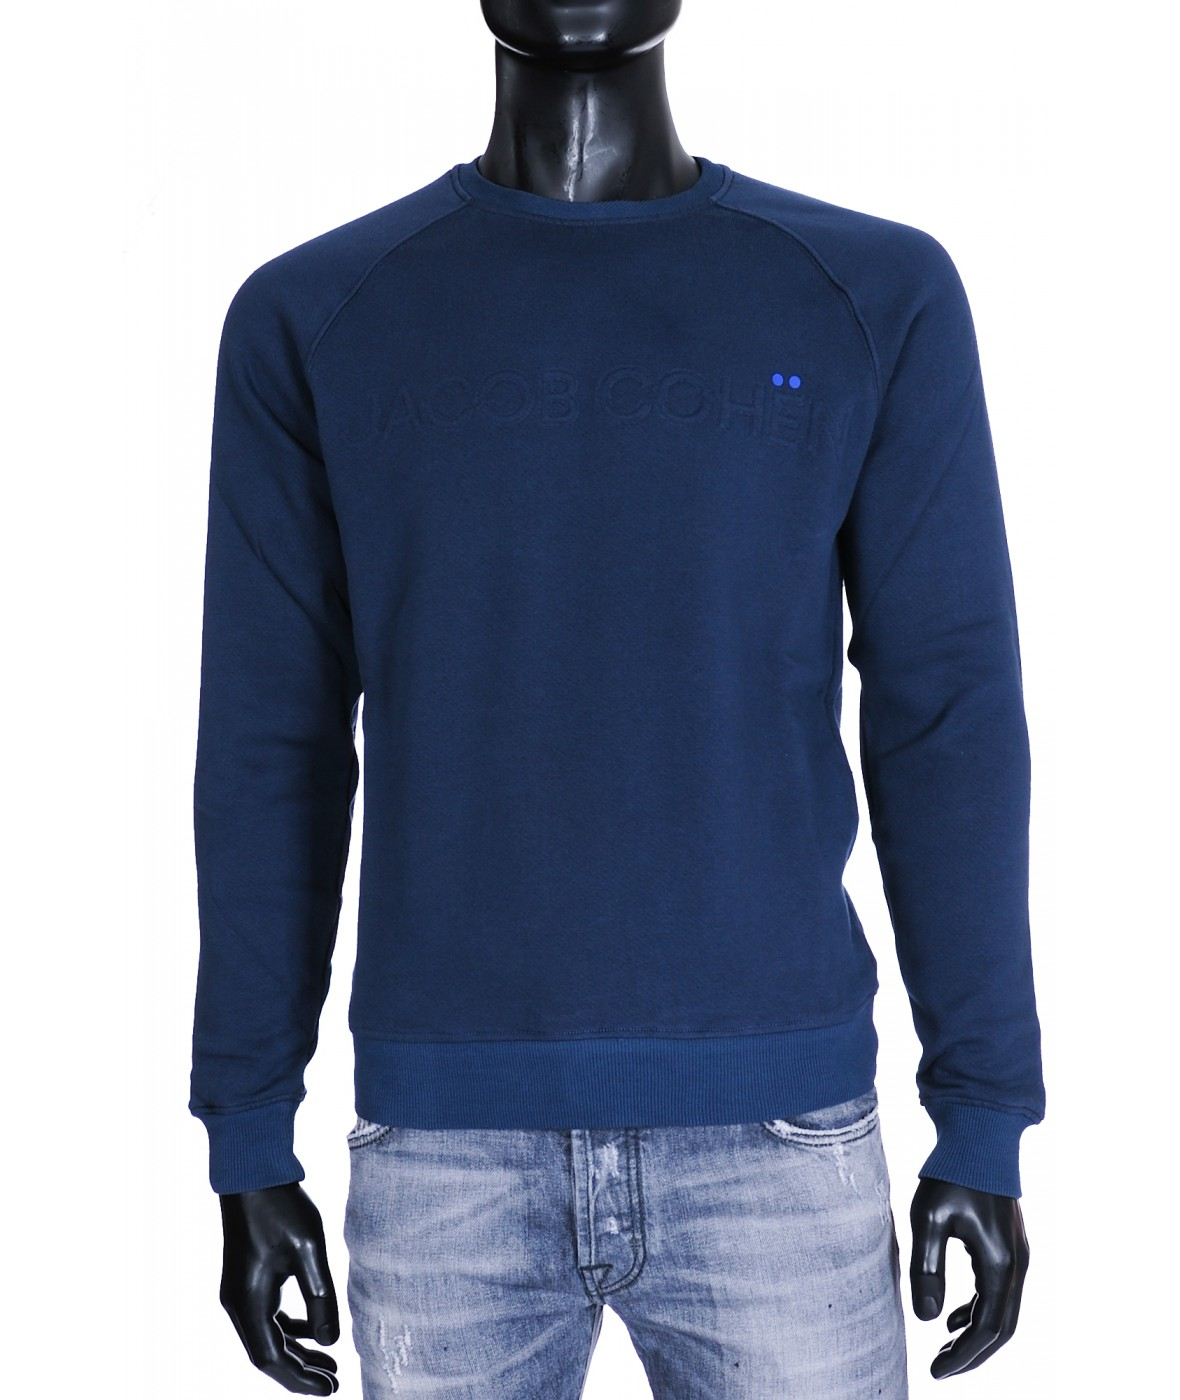 Jacob Cohen Sweater Donkerblauw (31436)